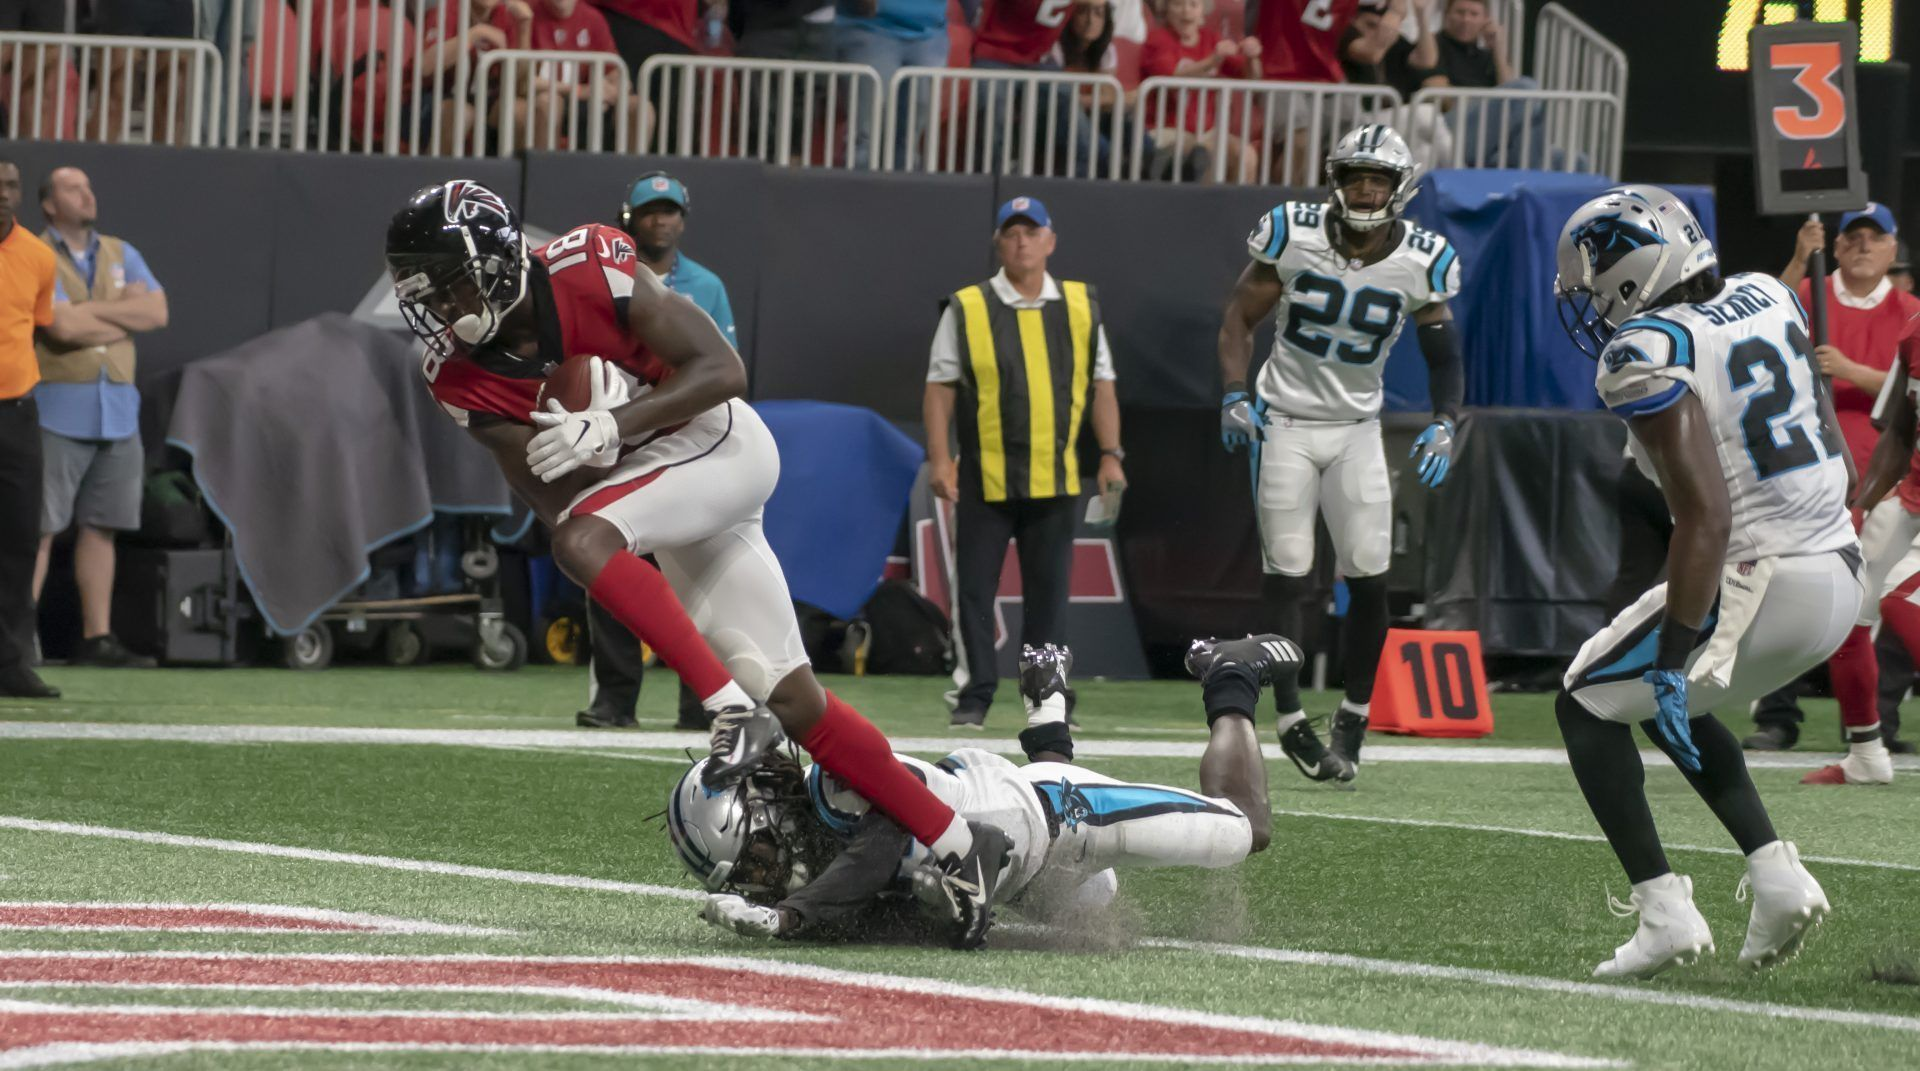 Falcons Control The Controllable With Images Falcons Red Zone Atlanta Falcons